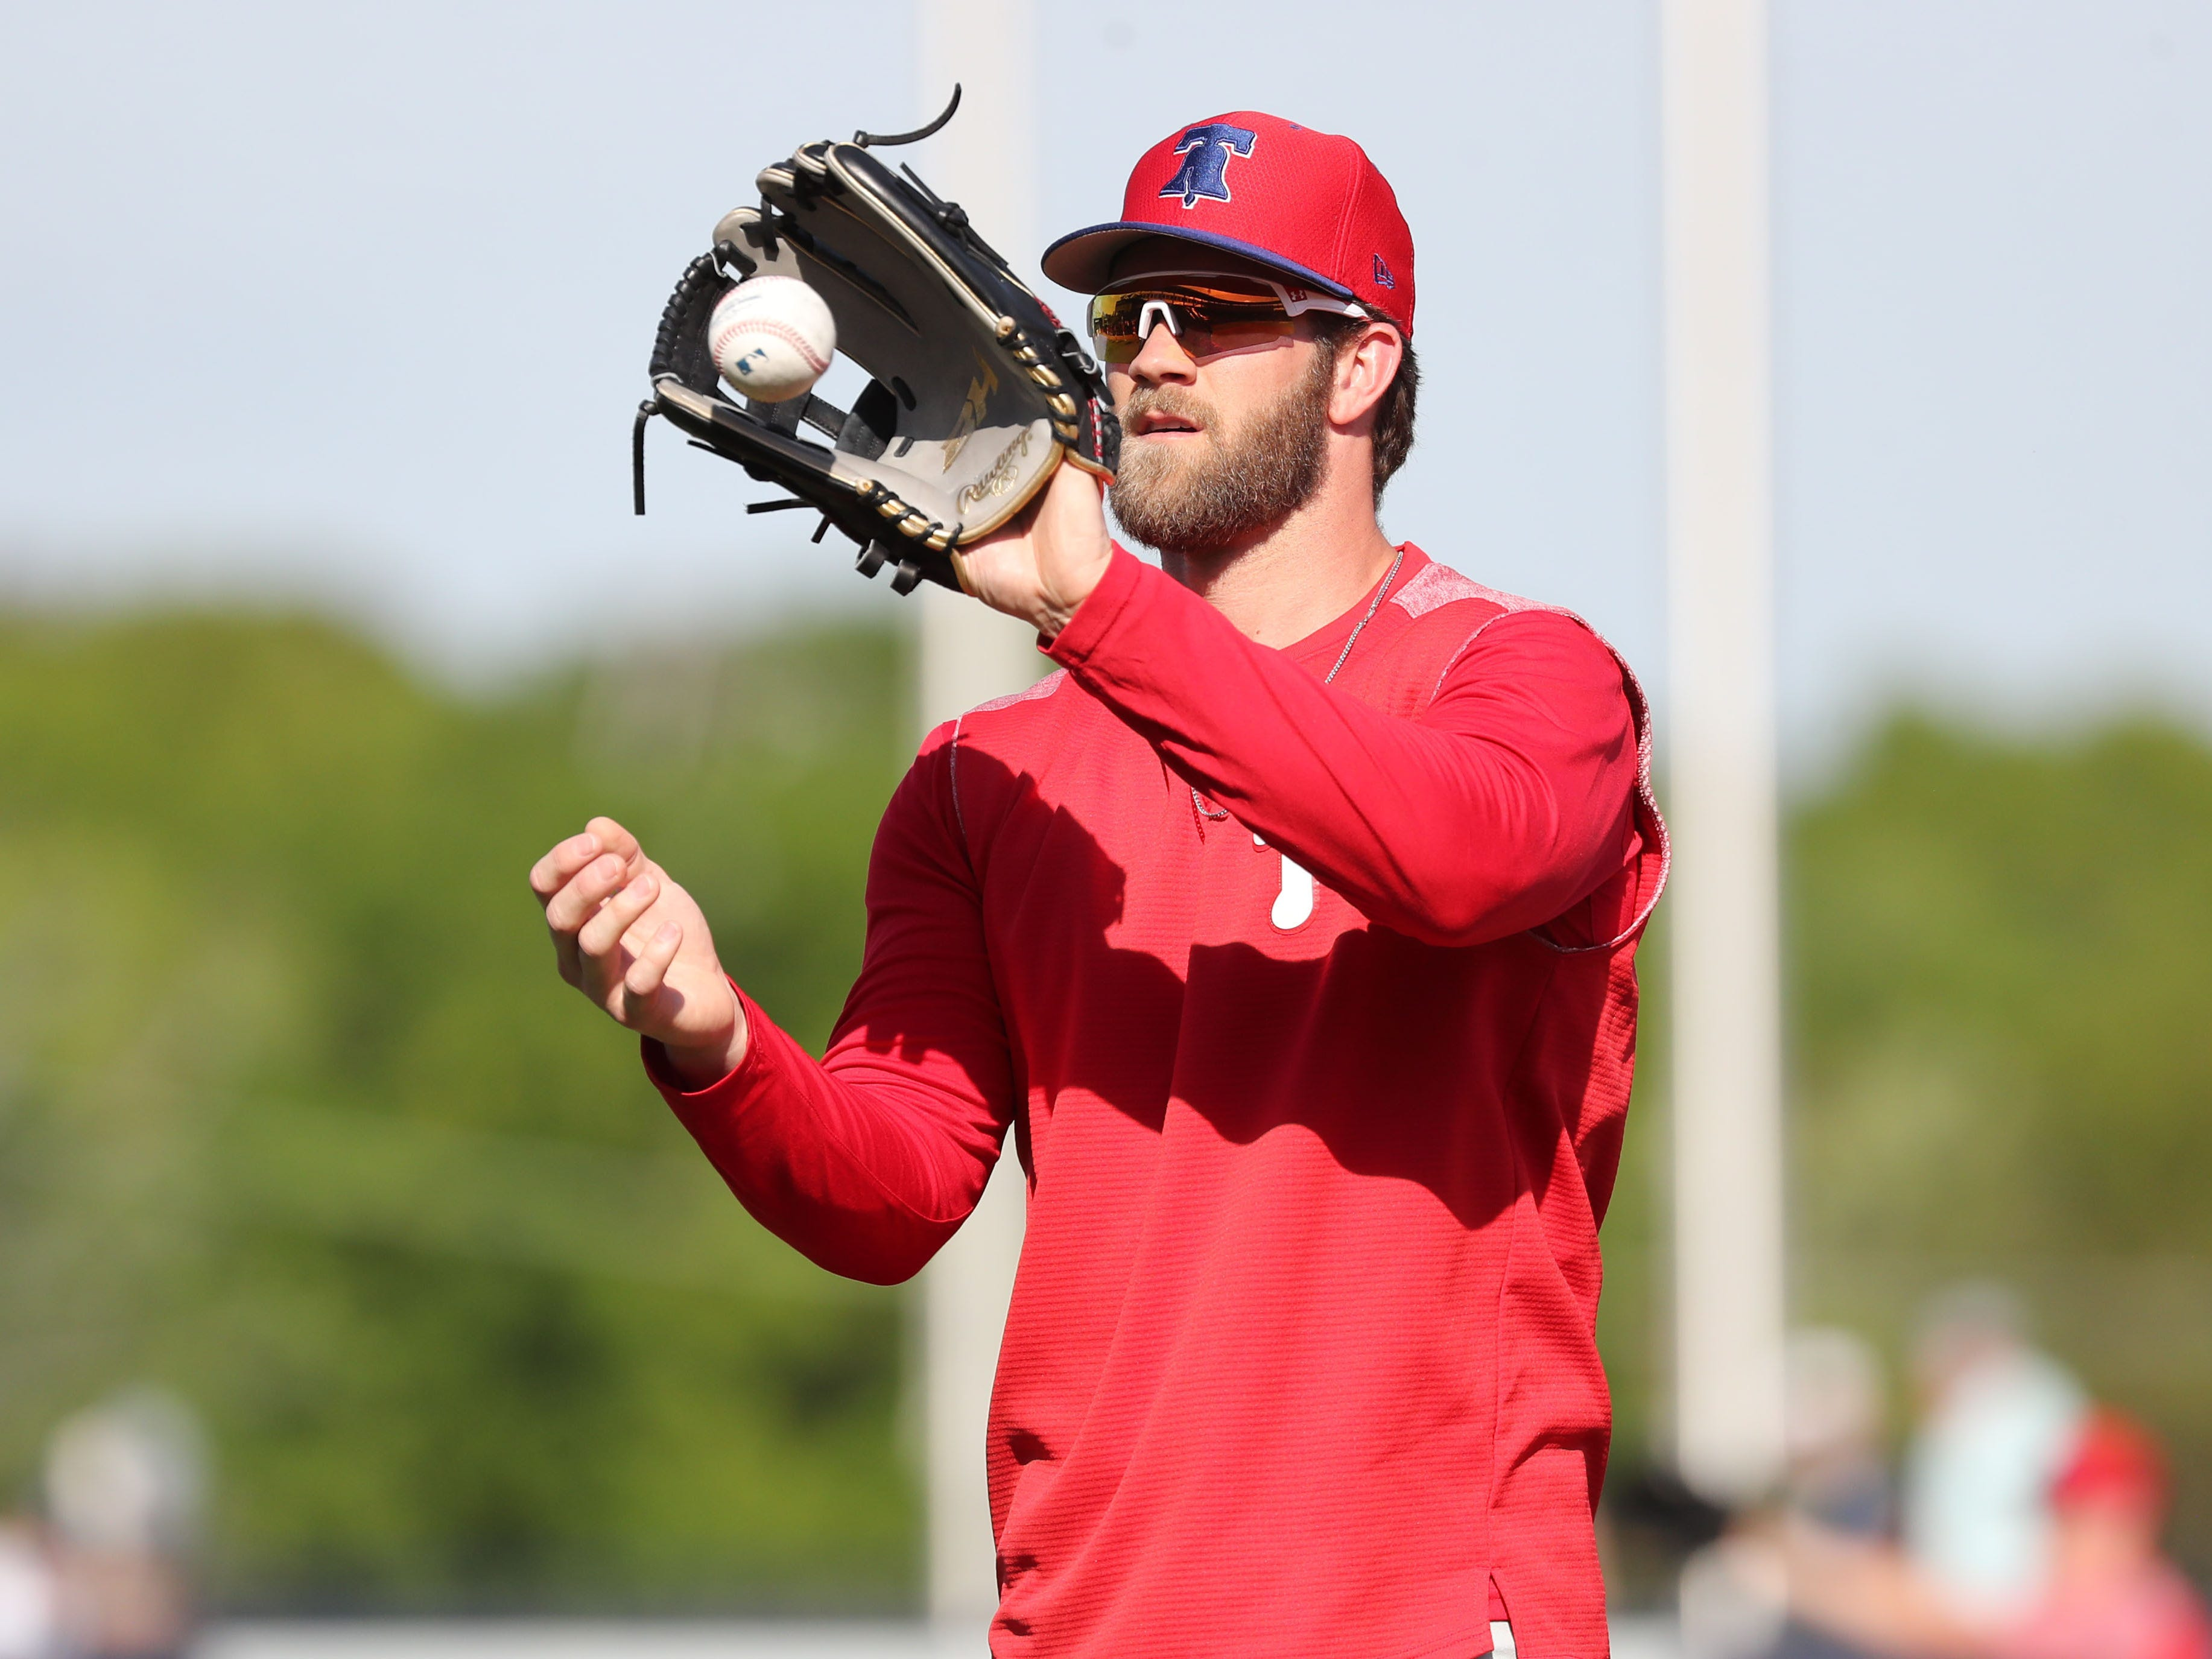 Mar 13, 2019; Tampa, FL, USA; Philadelphia Phillies right fielder Bryce Harper (3) works out prior to the game against the New York Yankees at George M. Steinbrenner Field.